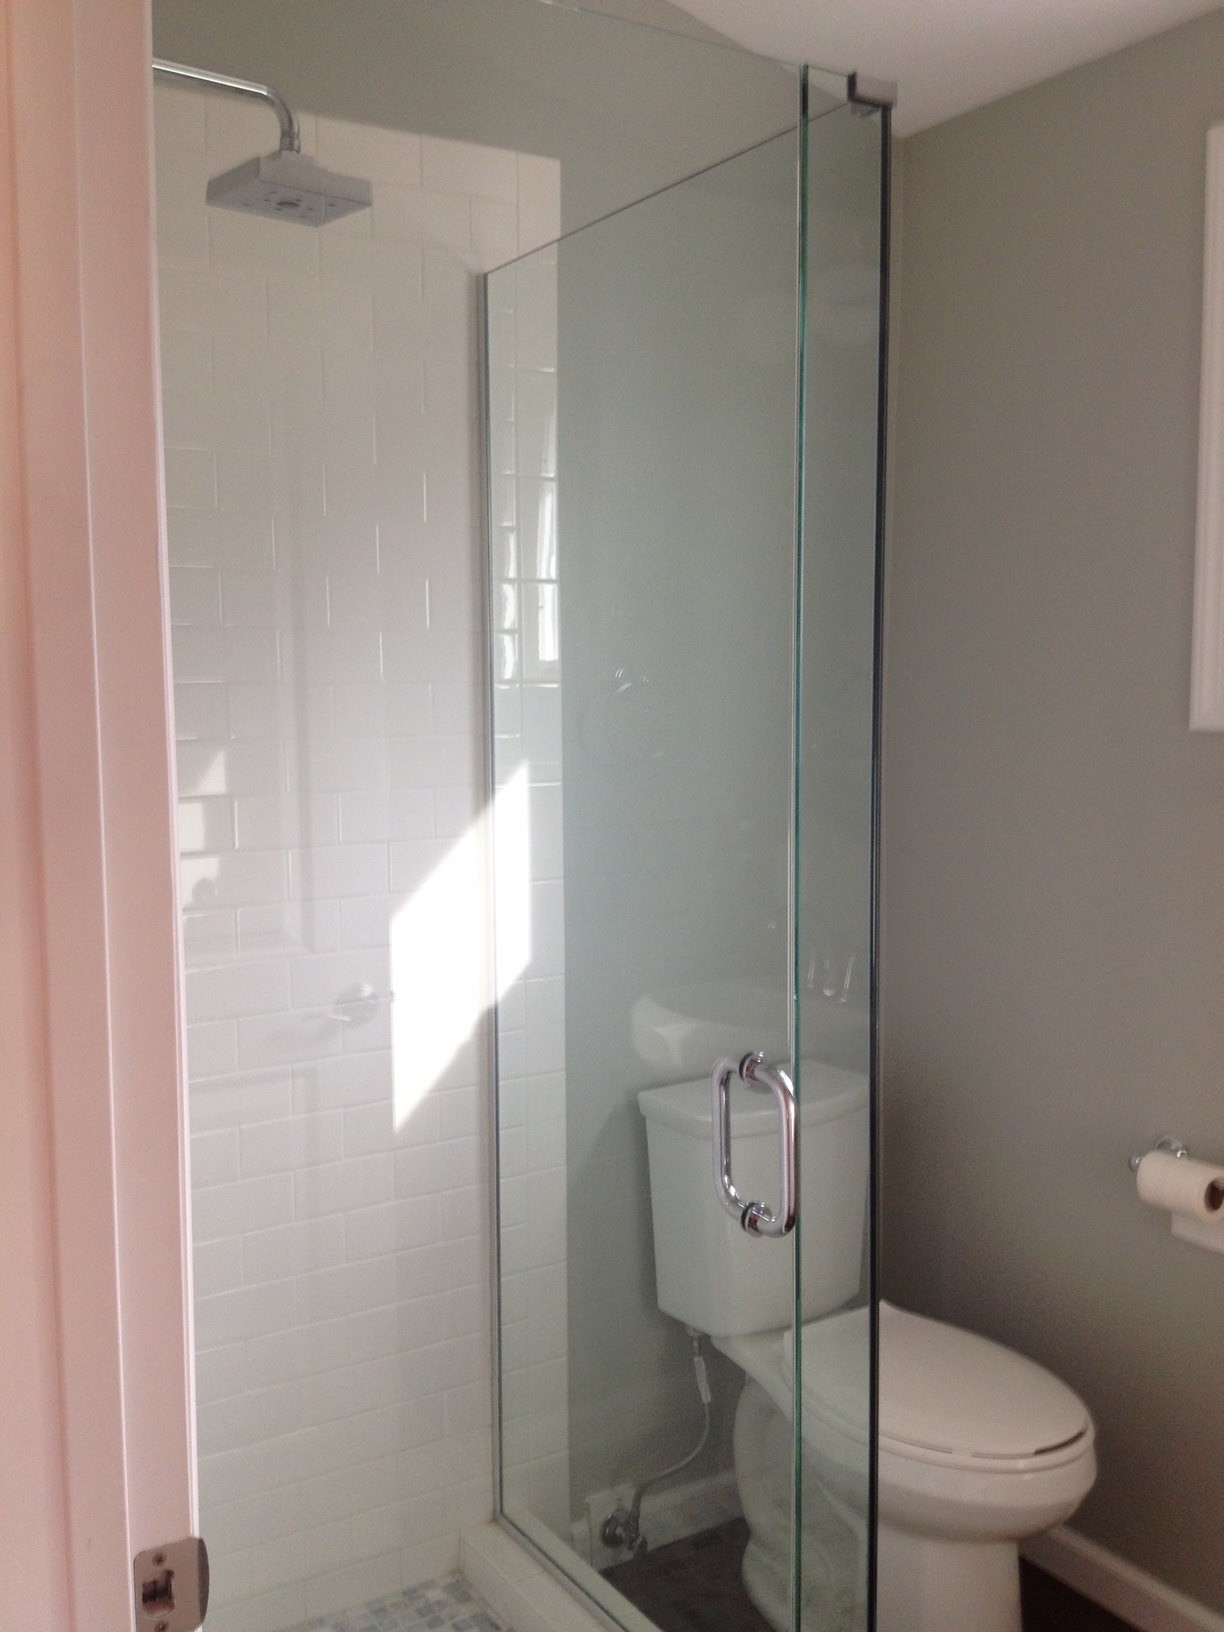 After: You don't need a ton of space to build a bathroom